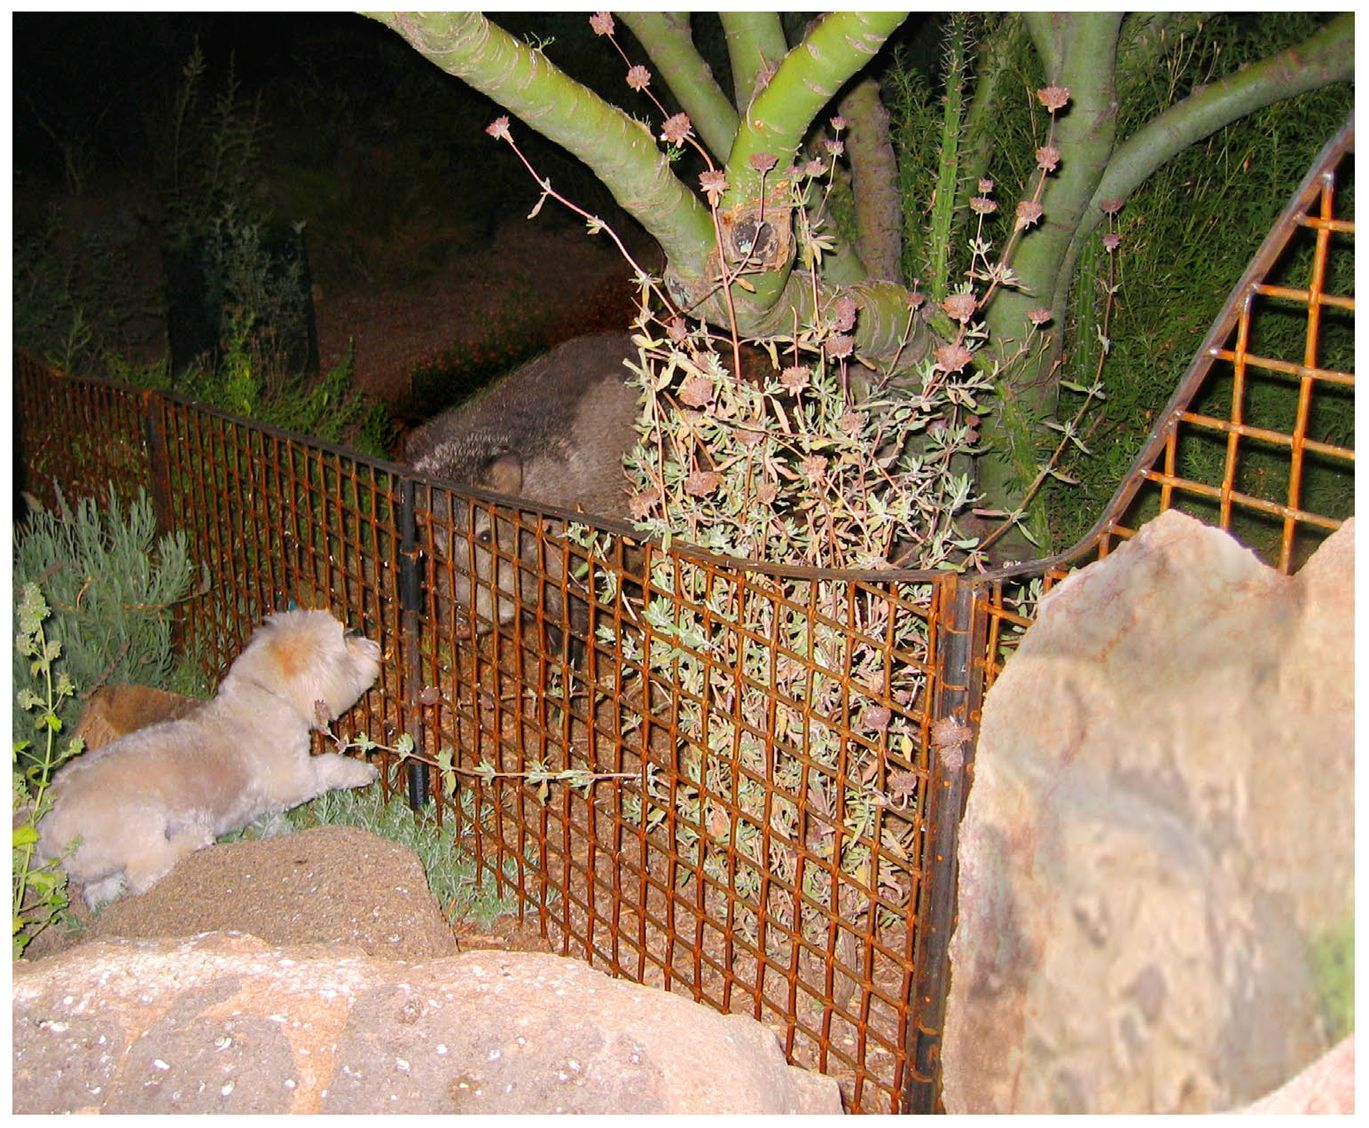 how do you keep a javelina out of your yard mcnichols wire mesh